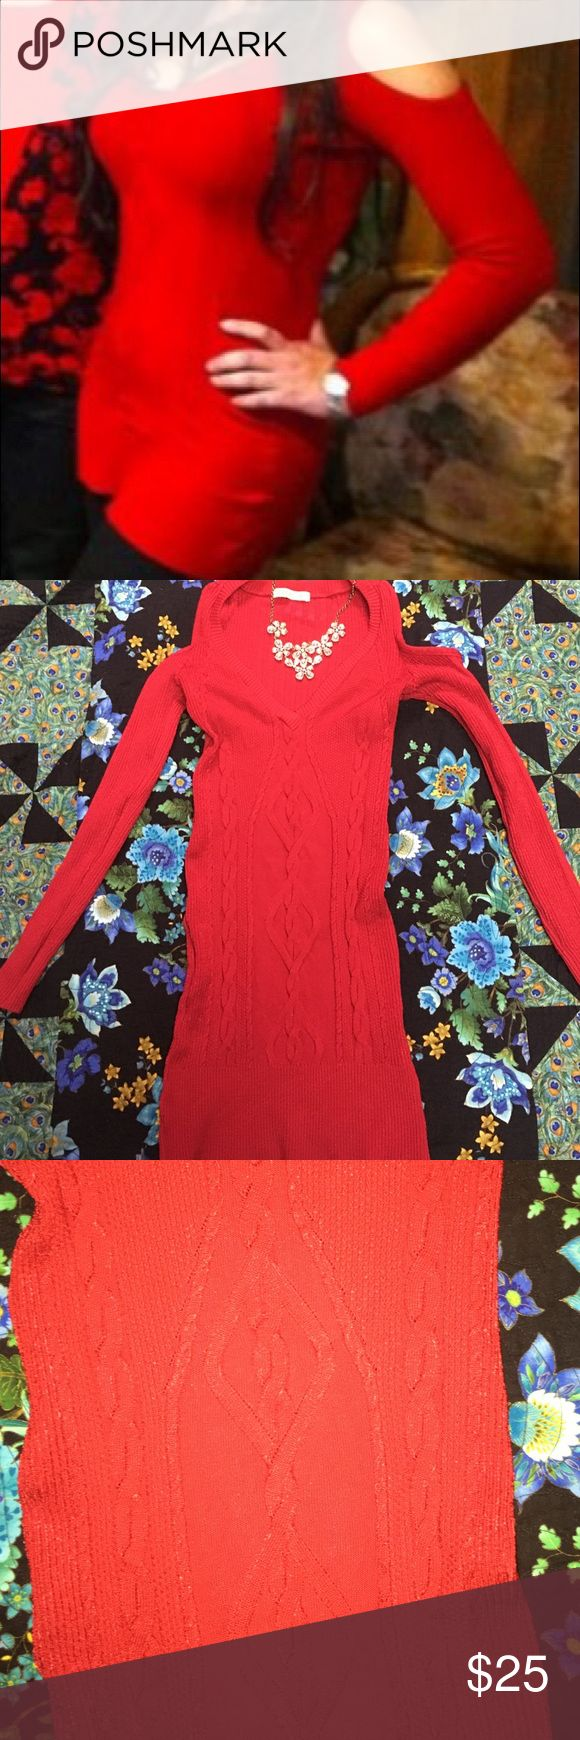 Cold Shoulder Bodycon Tunic Red Tunic Sweater w cold shoulder cut outs & V-neck. Size M. Worn once Tops Tunics